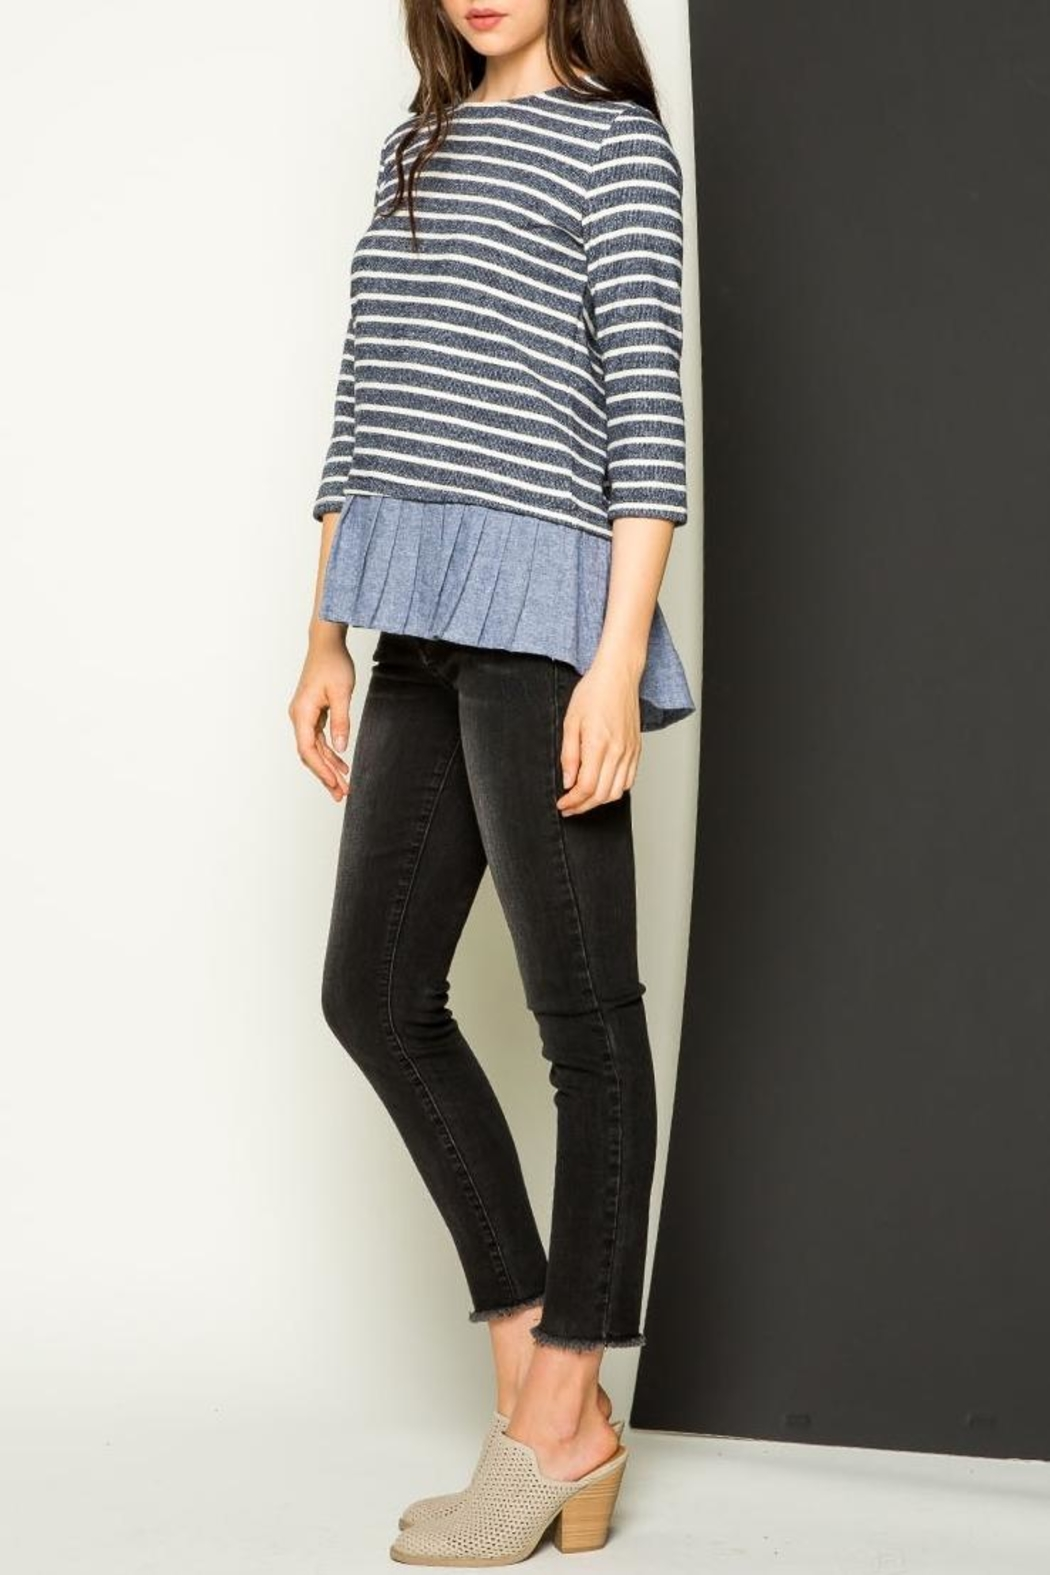 THML Clothing Striped Sweater - Side Cropped Image